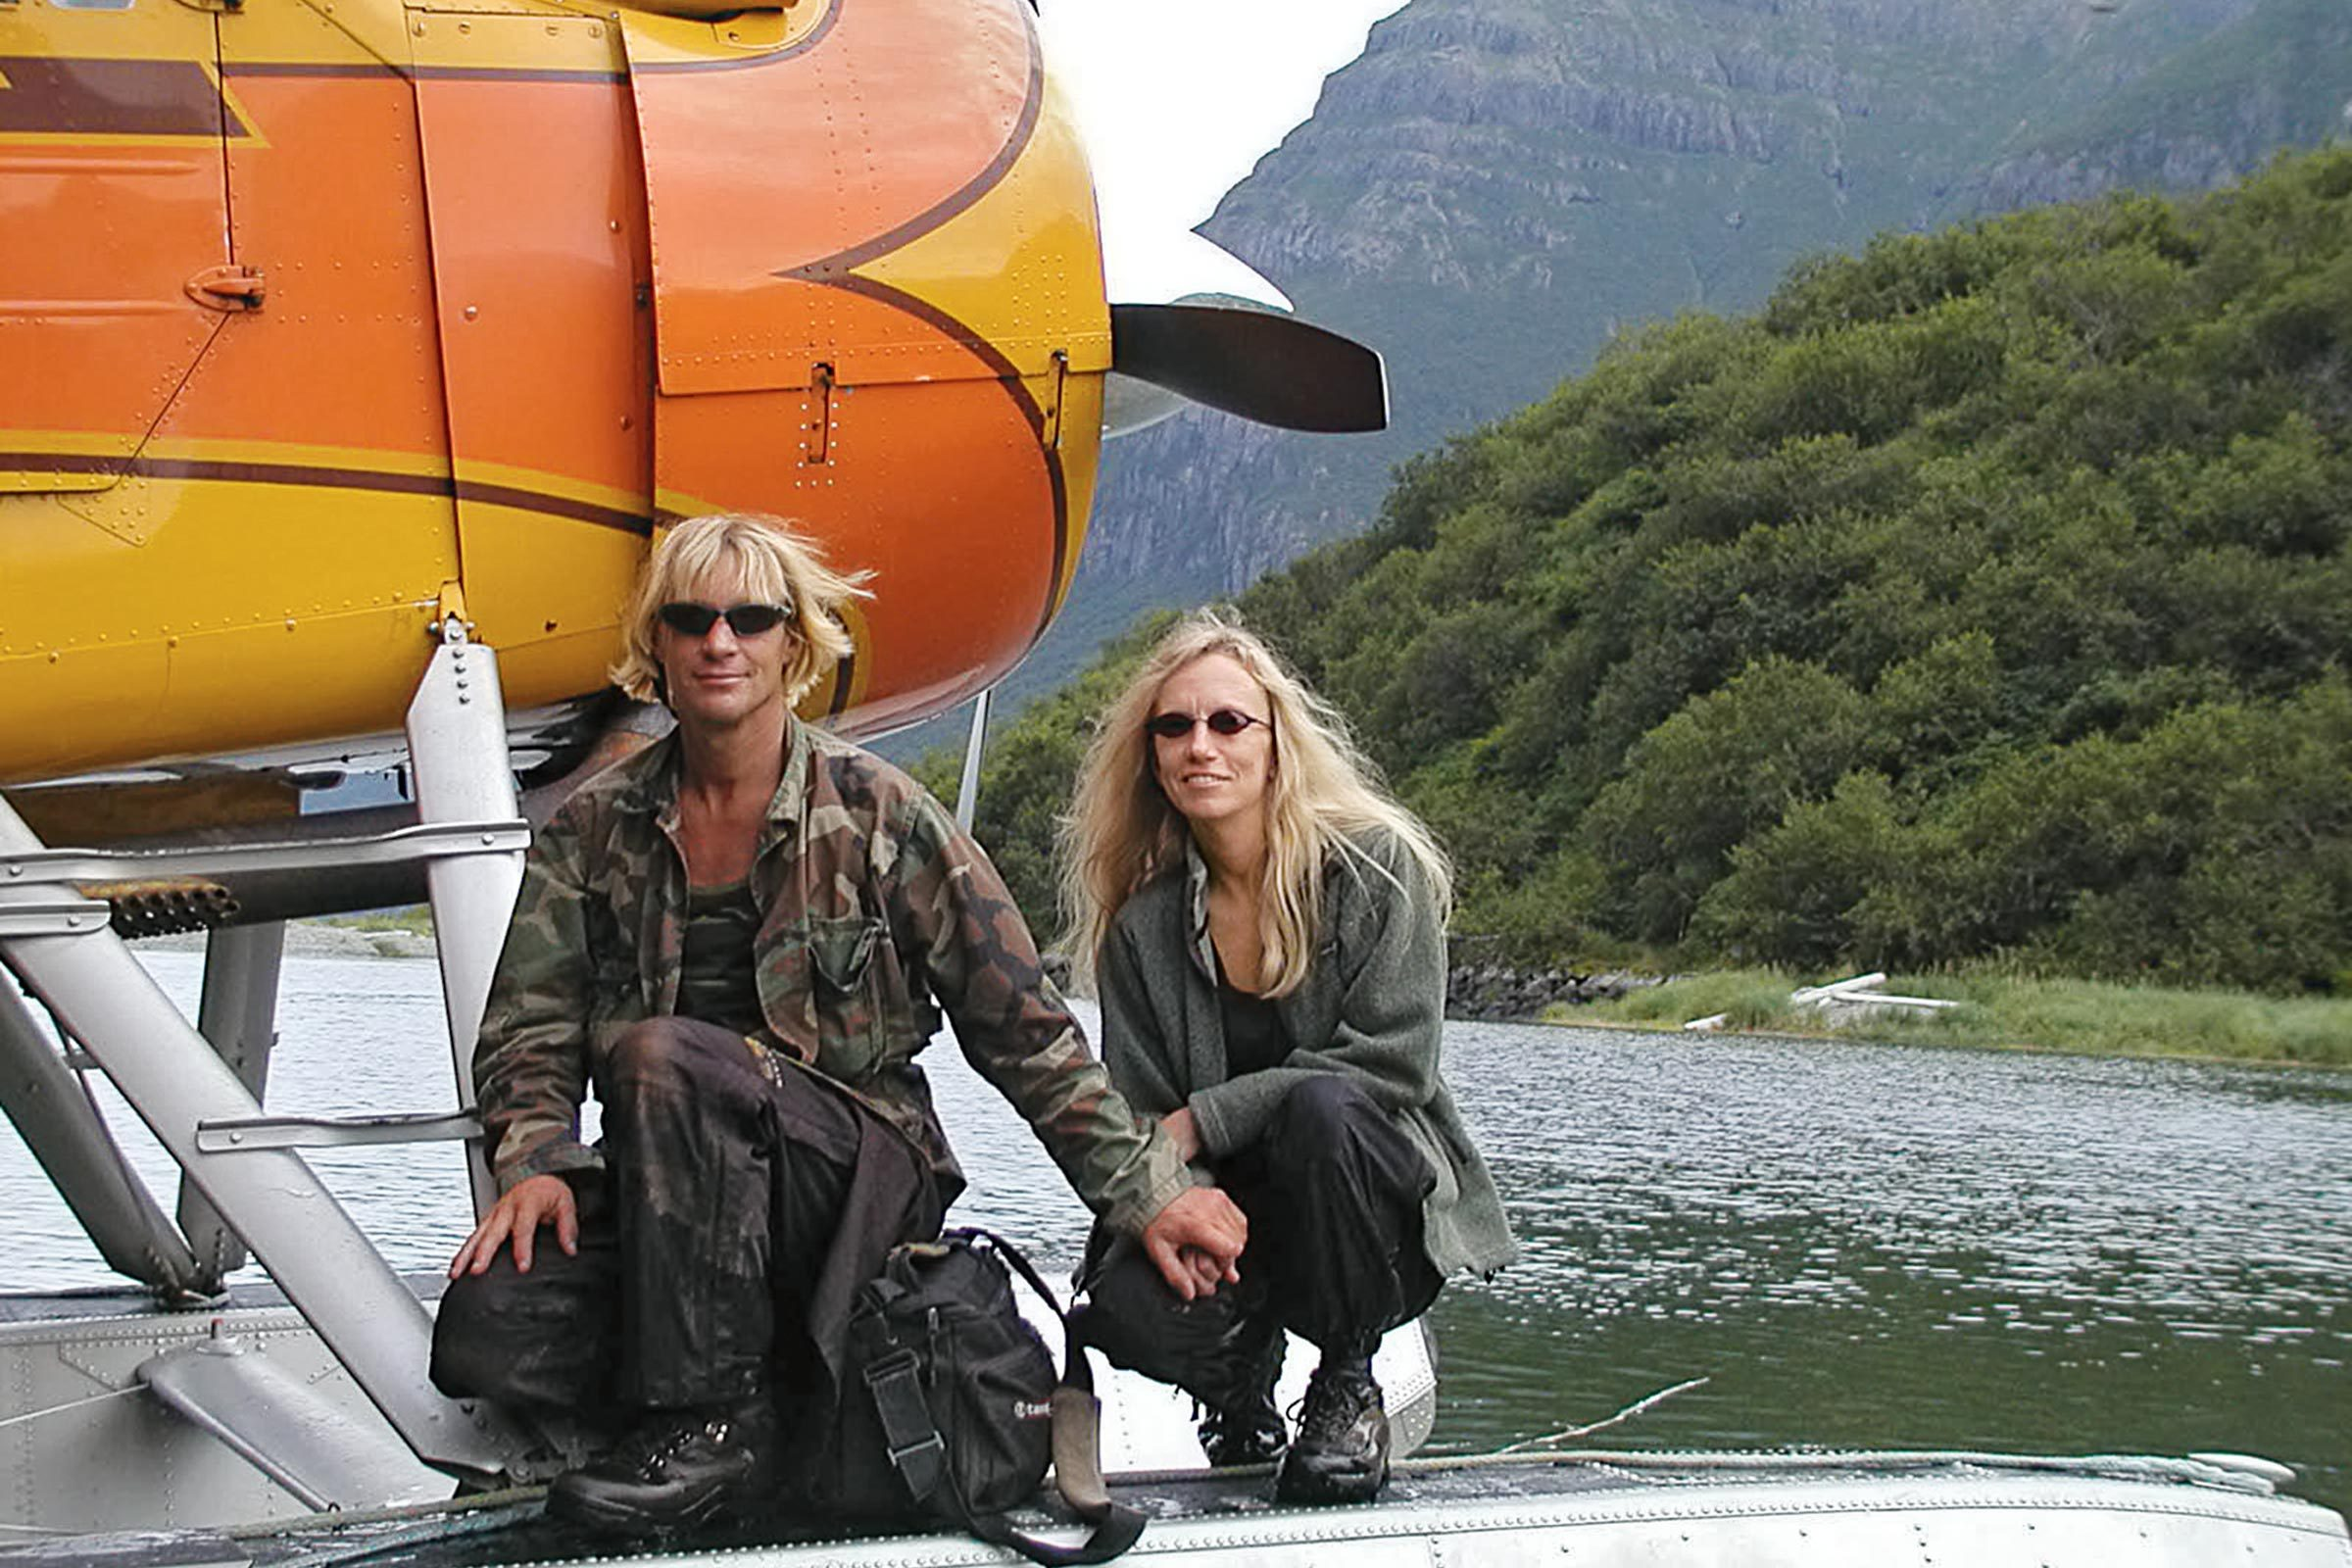 Treadwell and Huguenard in 2002, about to reunite with Katmai's bears.